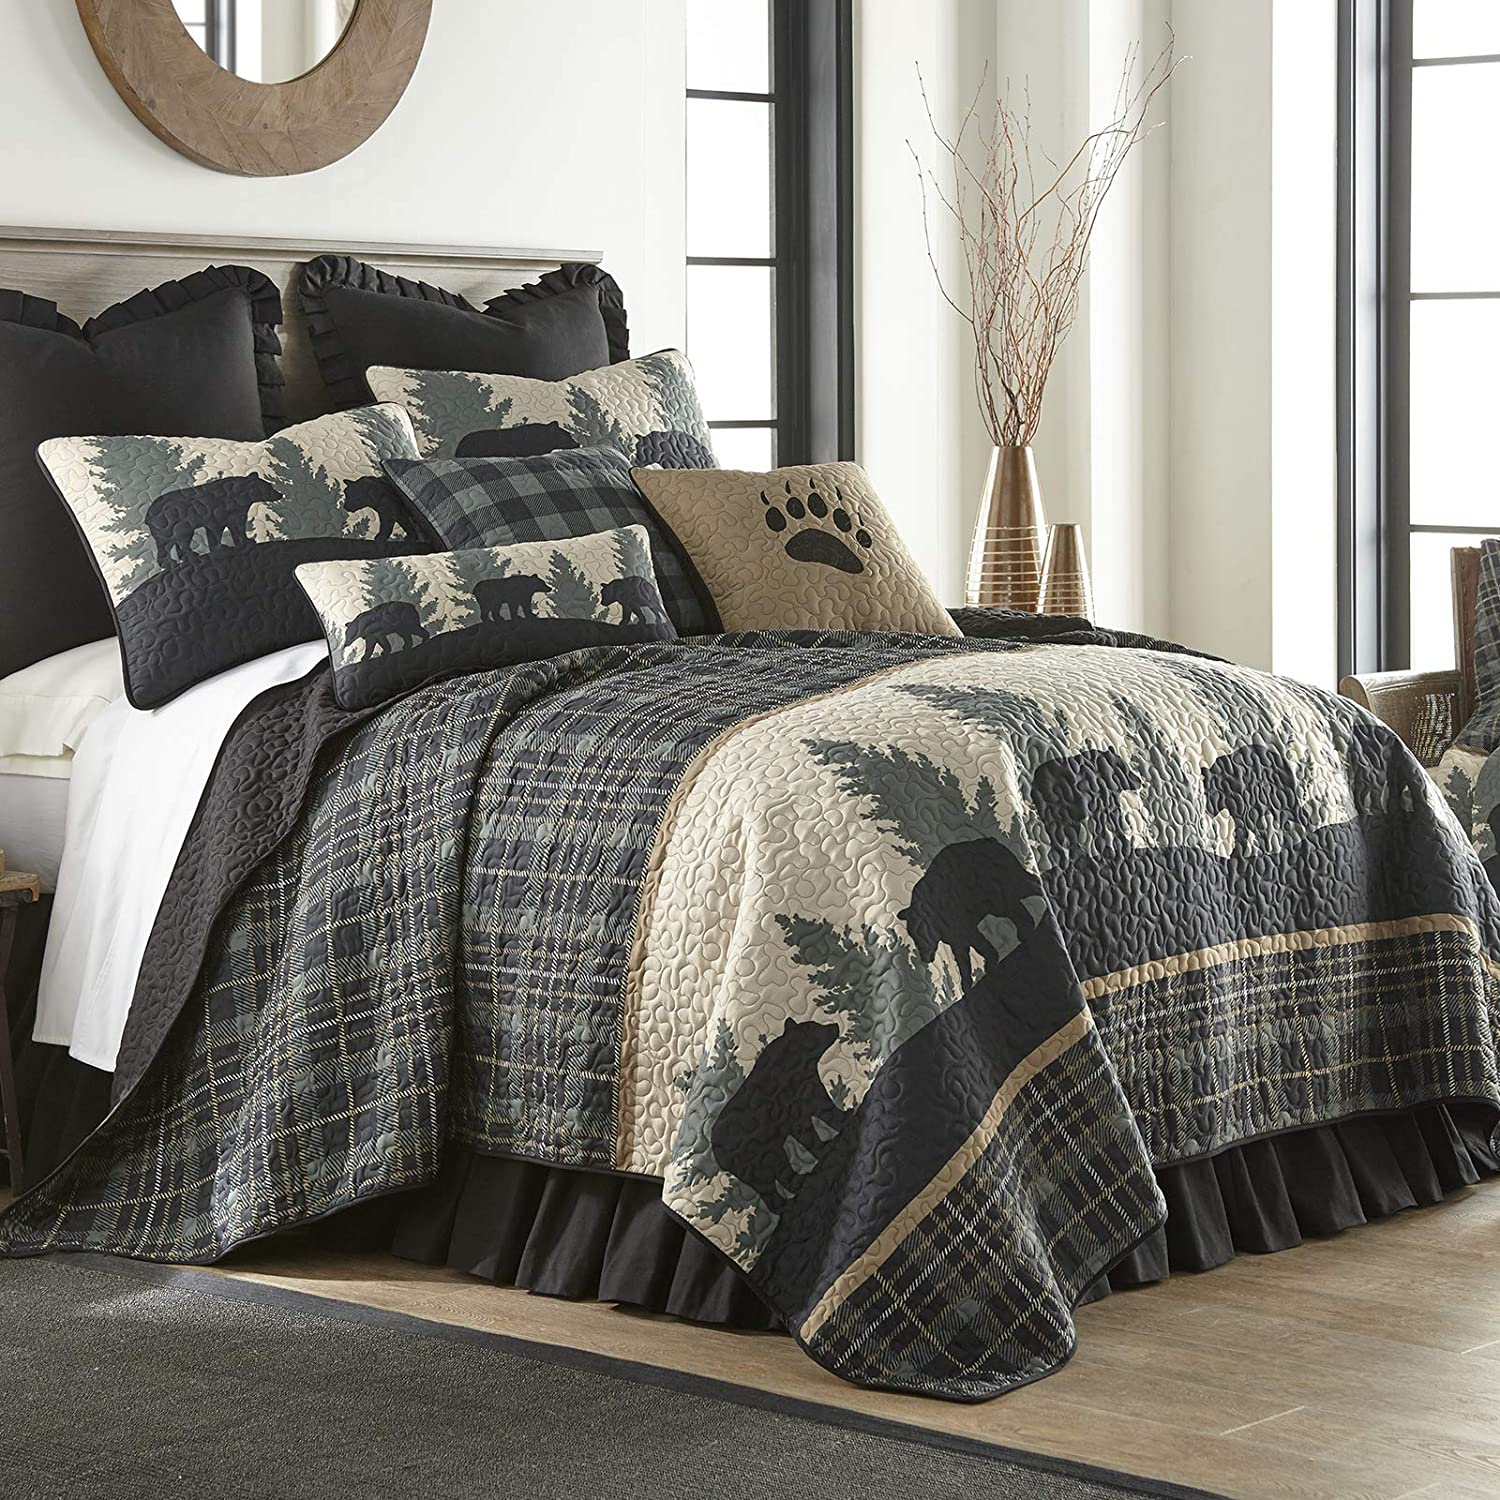 Donna Sharp Twin Bedding Set - 2 Piece - Bear Walk Plaid Lodge Quilt Set with Twin Quilt and One Standard Pillow Sham - Machine Washable